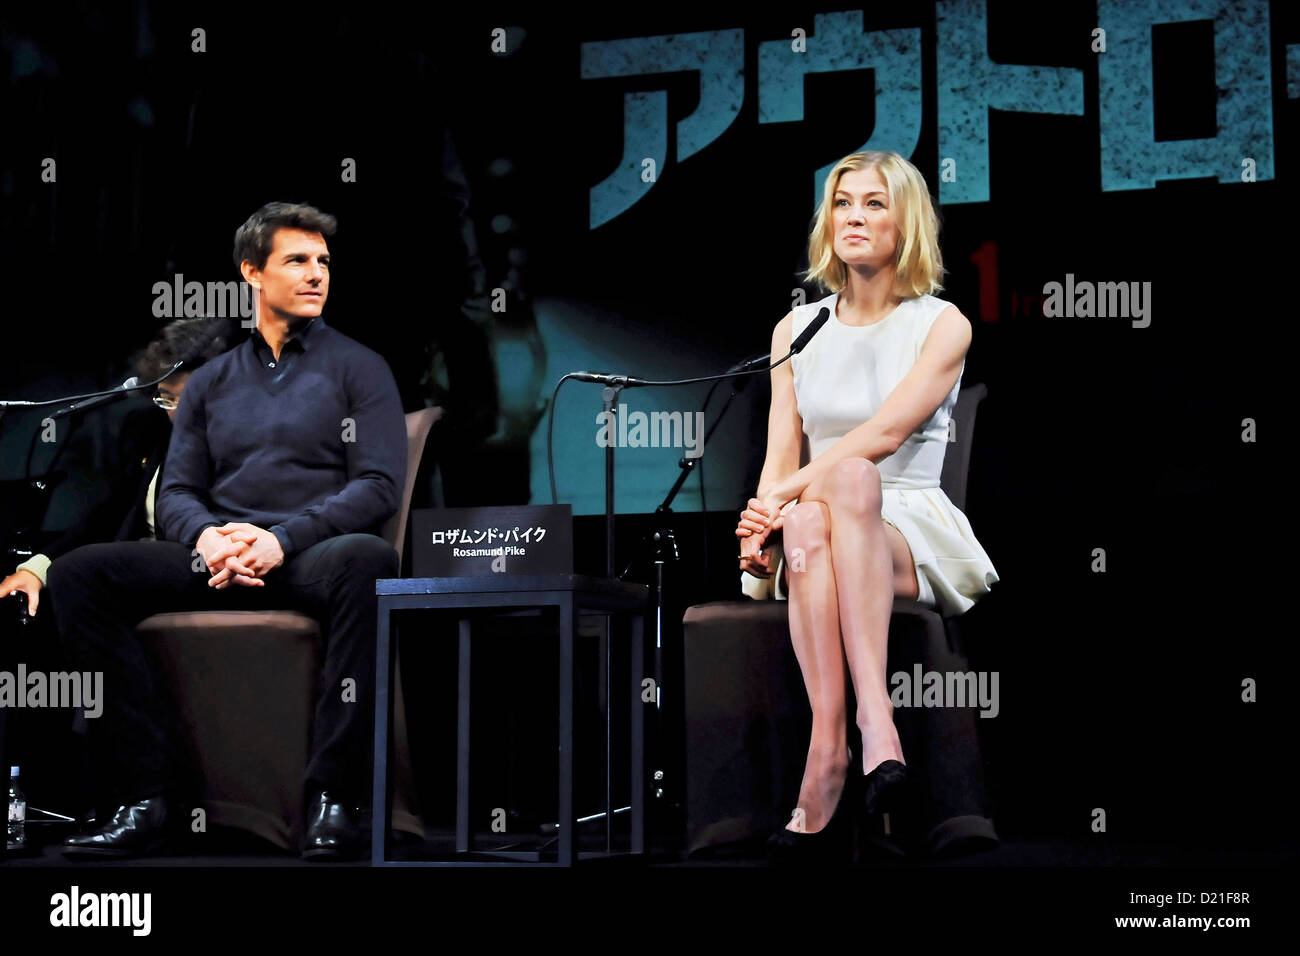 Actress Rosamund Pike and actor Tom Cruise attend the 'Jack Reacher' press conference at the Ritz Carlton Hotel Stock Photo